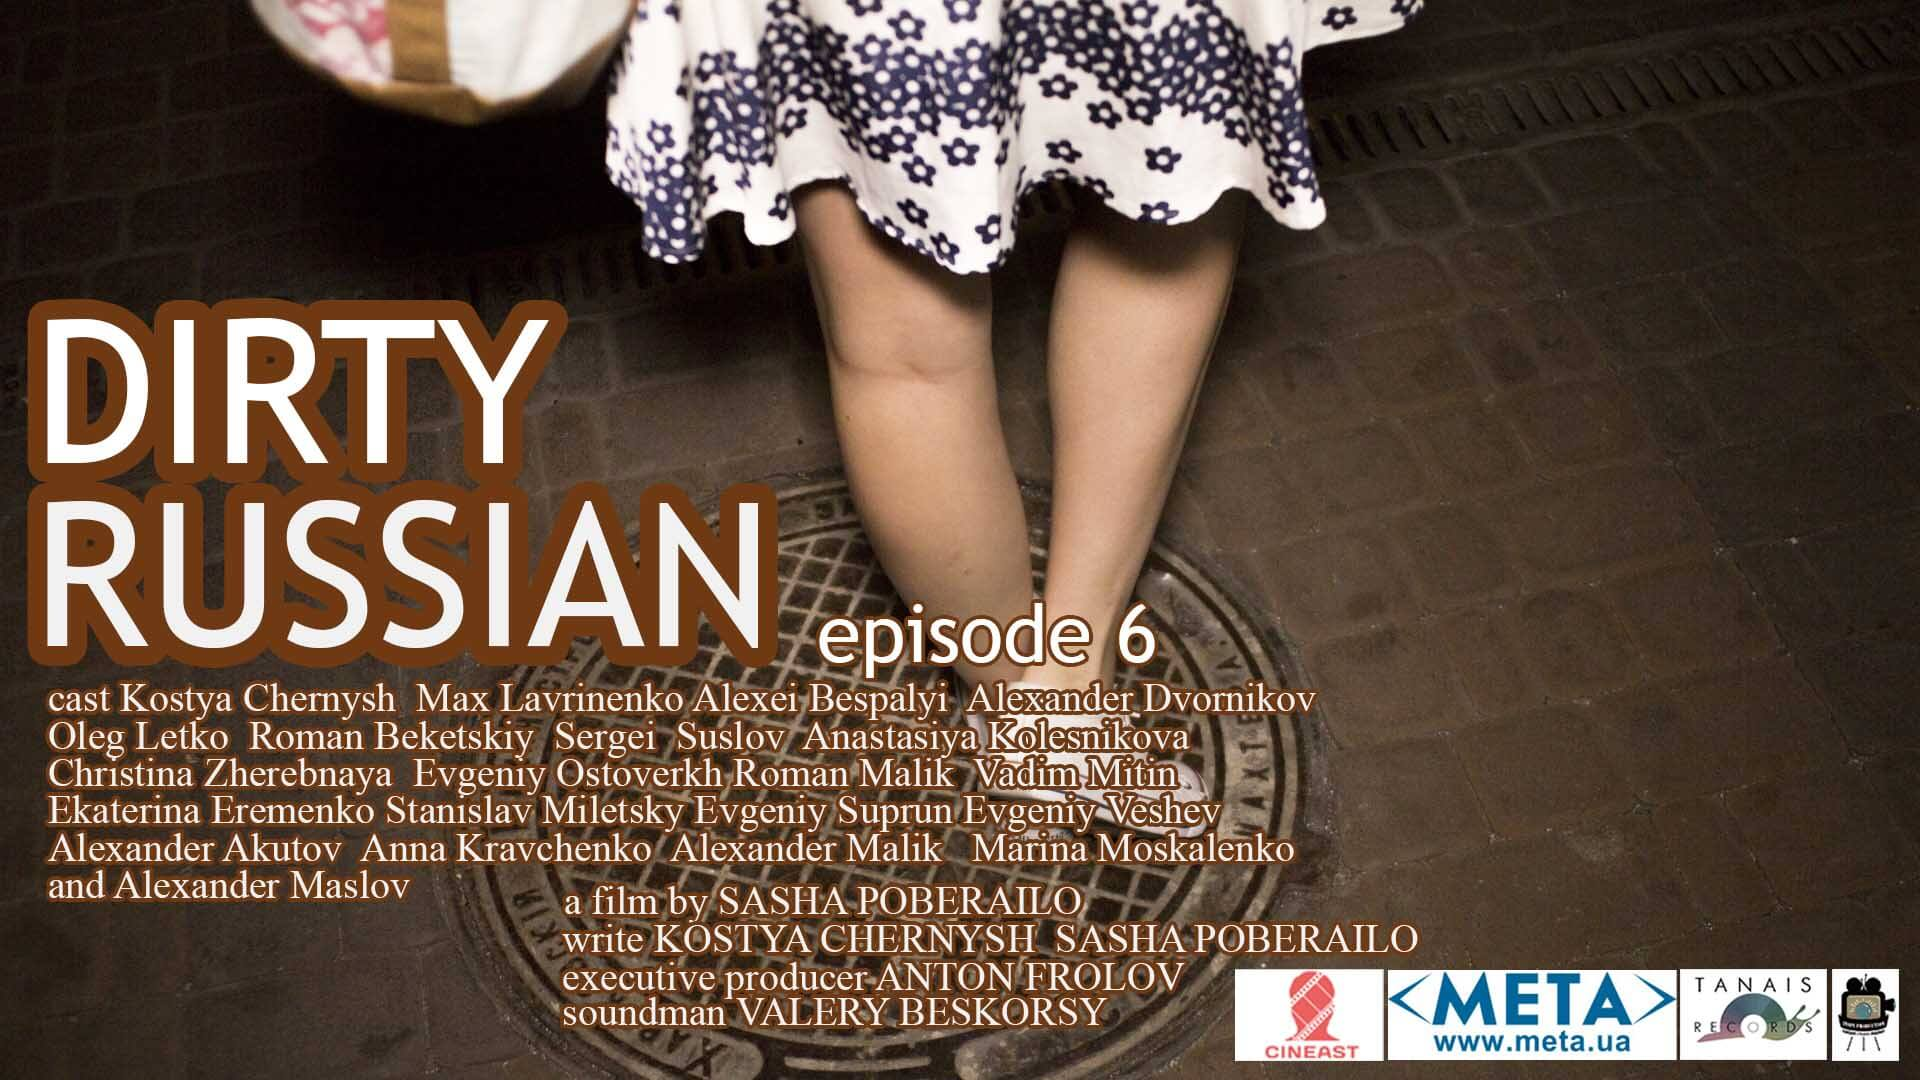 dirty russian episode 6 - dark